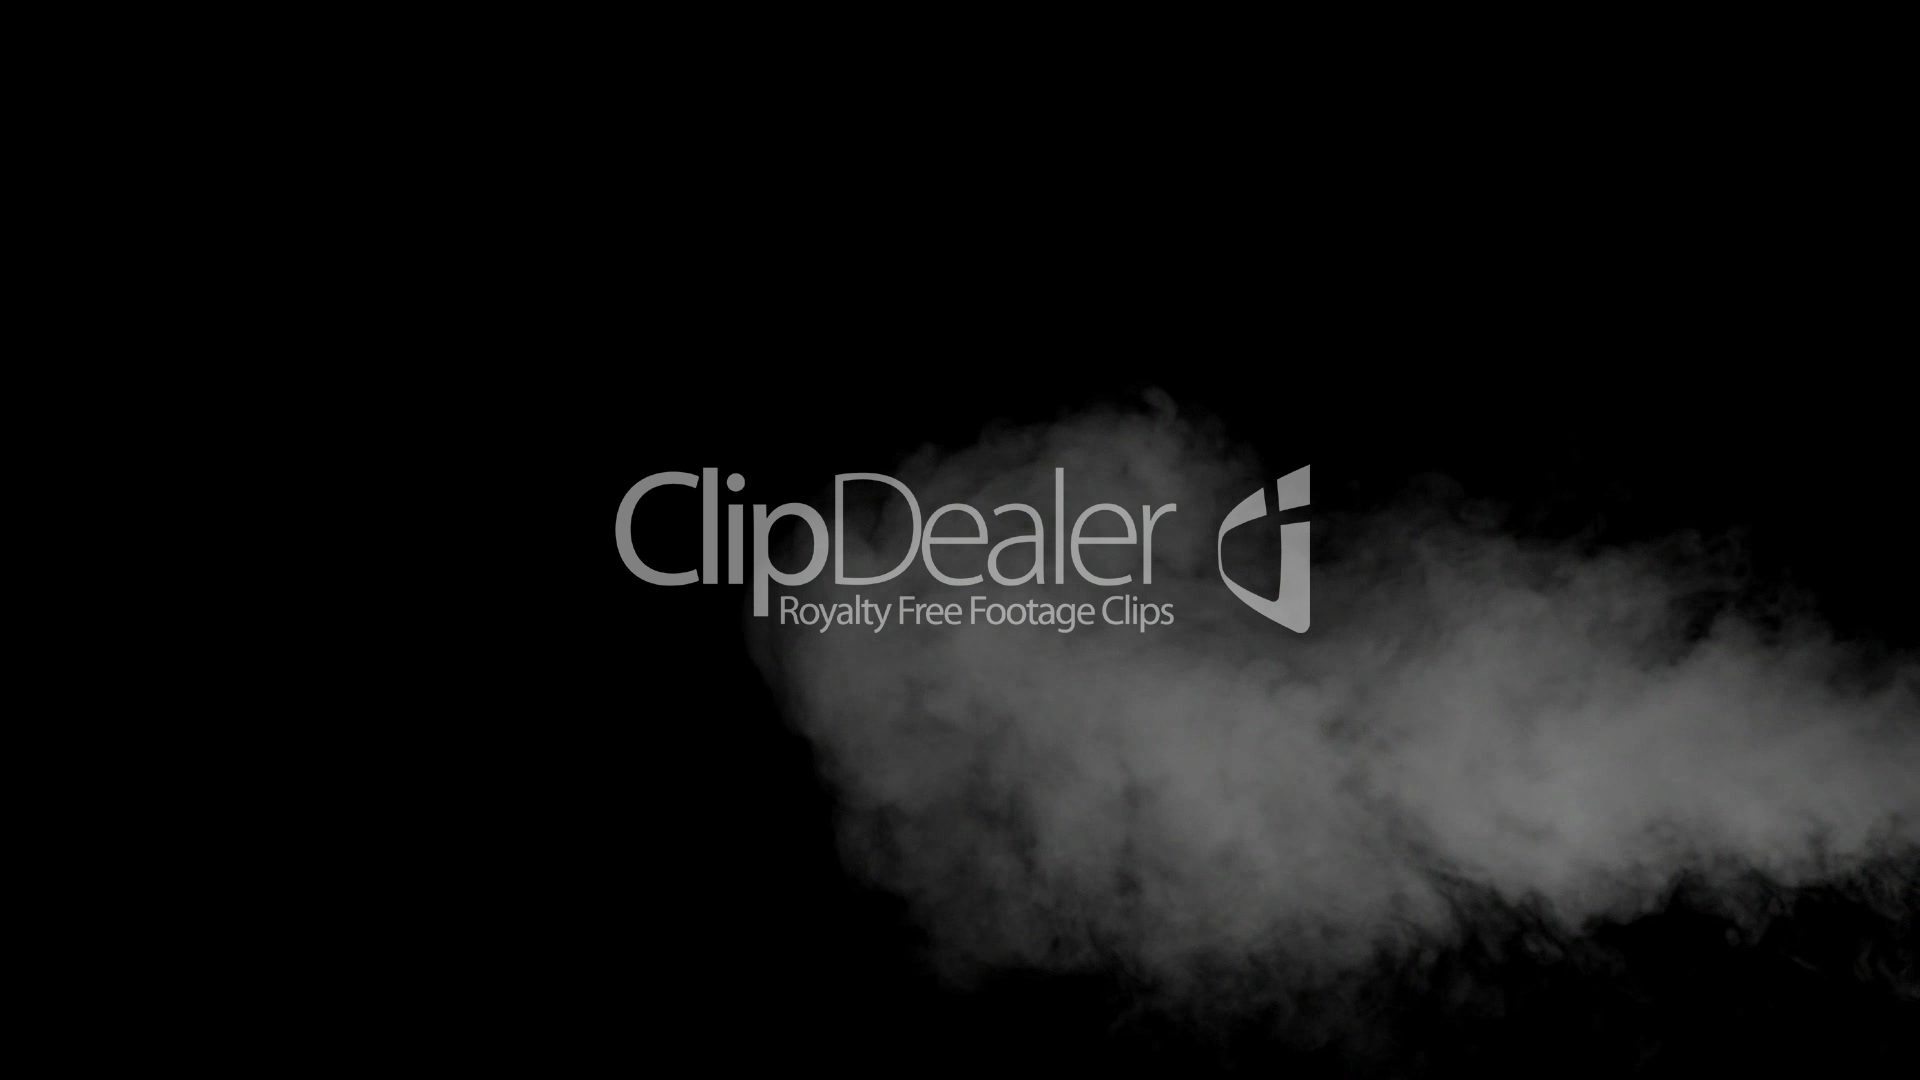 Smoke drift against black background: Royalty-free video and